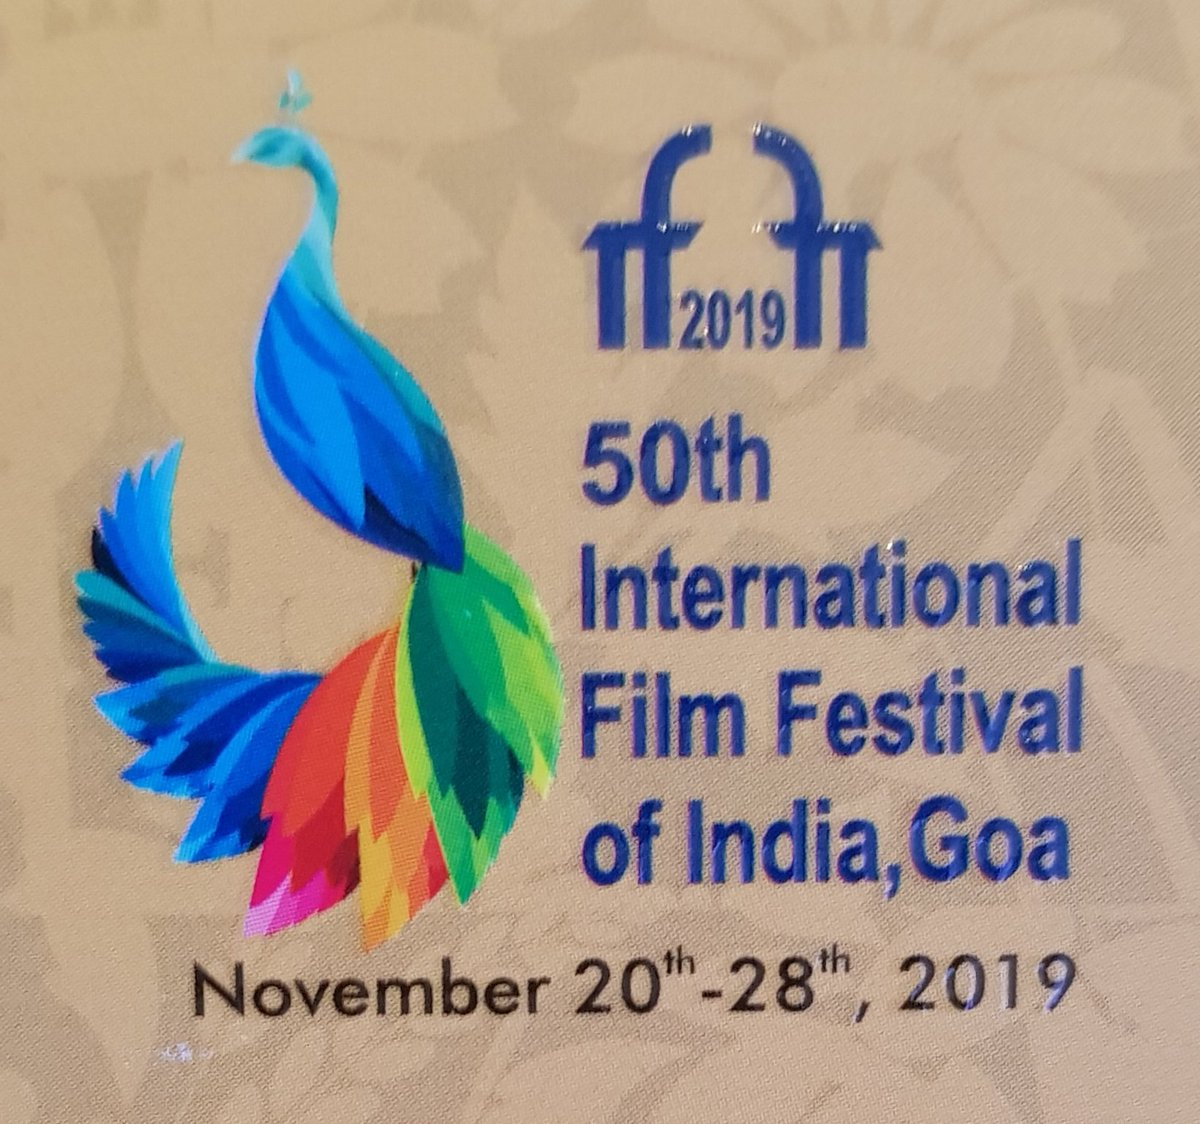 Gonna enjoy doing this... 😊 We, at the #WhistlingWoodsJioVRLab are conducting a workshop on #CinematicVRFilmmaking at @IFFIGoa. @Whistling_Woods @reliancejio